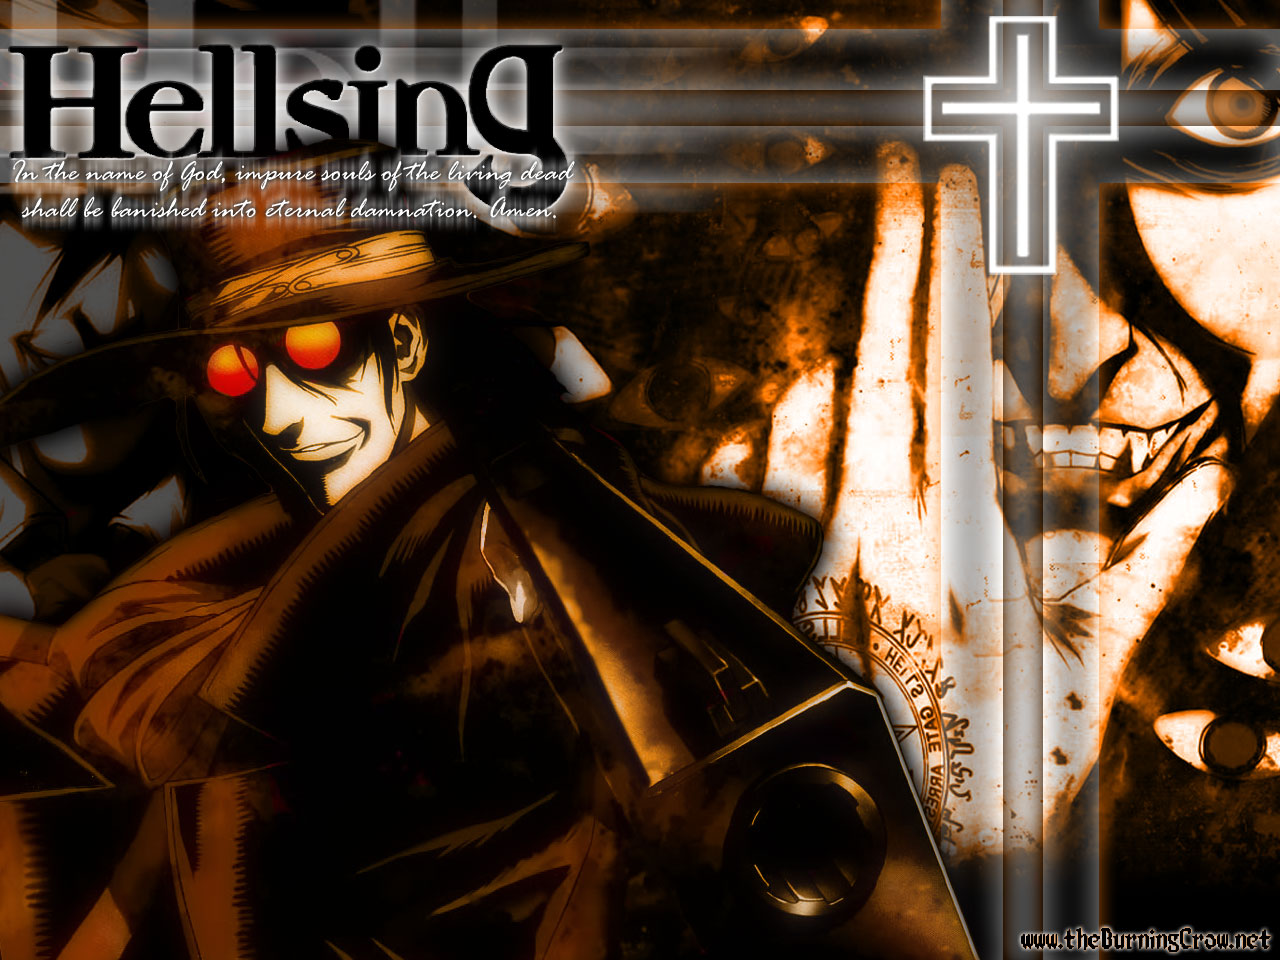 New hellsing anime wallpapers wallpaperholic - Anime hellsing wallpaper ...